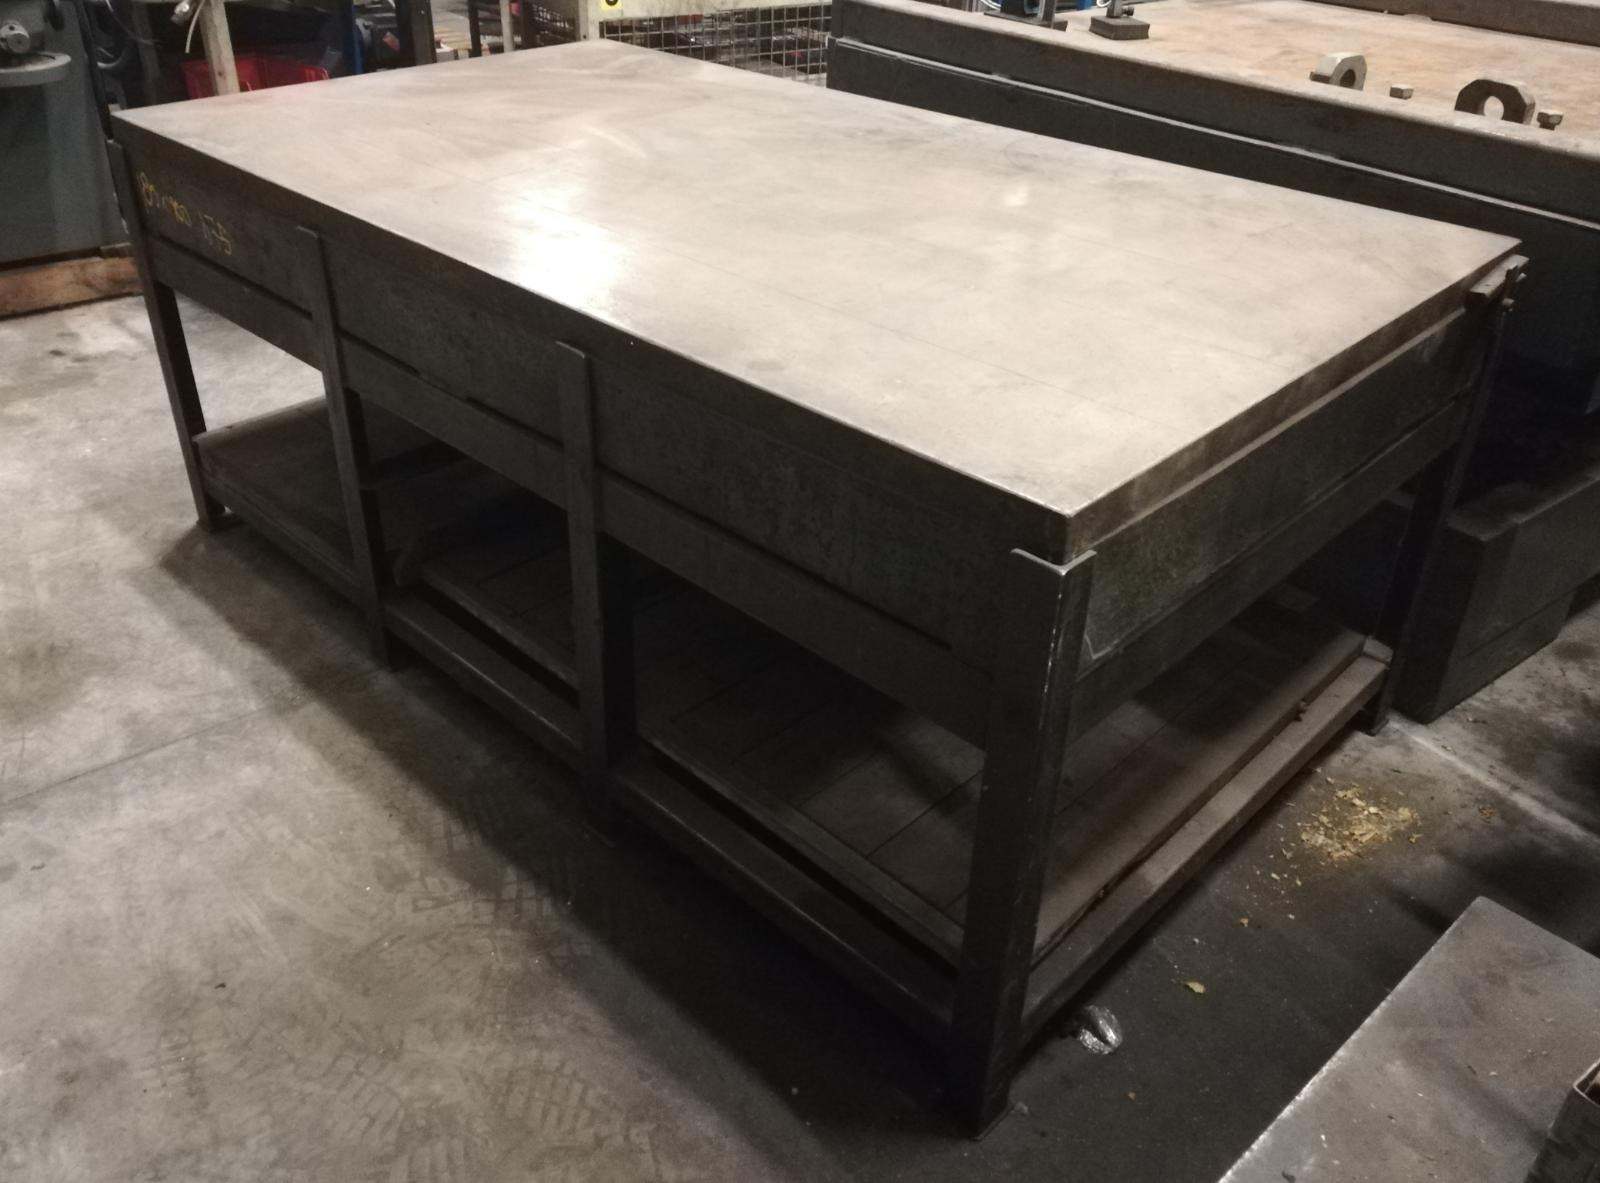 Work/counter tops